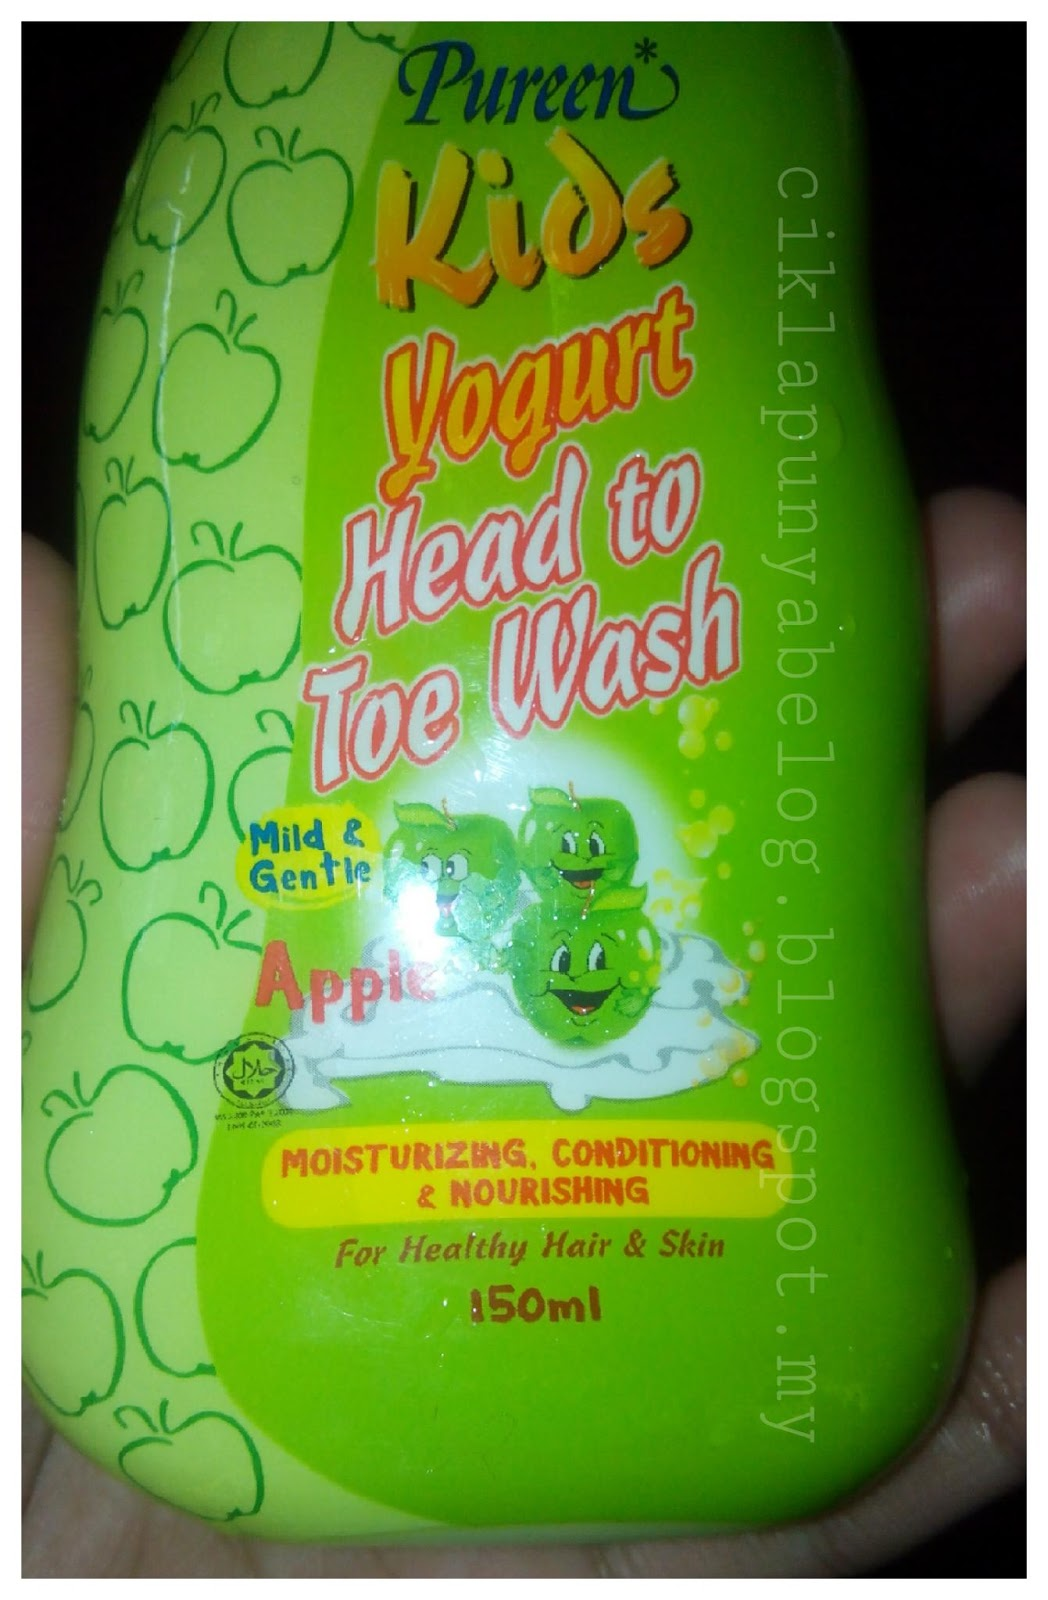 Pureen Kids Yogurt Head to Toe Wash : wangikan si kecil anda.